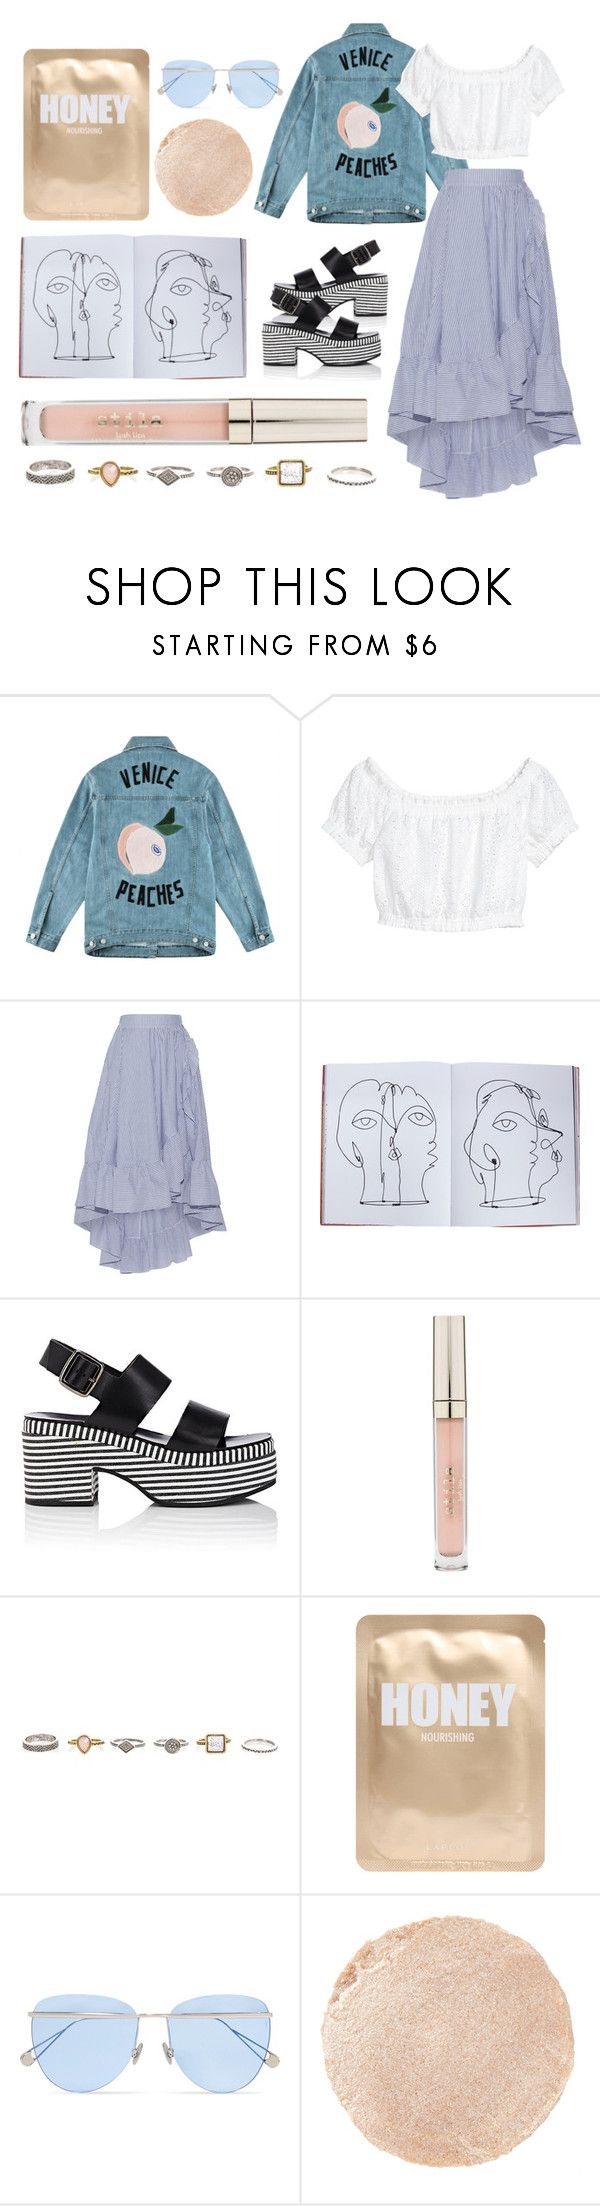 """""""Venice Peaches"""" by boosterann ❤ liked on Polyvore featuring Être Cécile, Maje, Assouline Publishing, Barneys New York, Stila, Lapcos, Sunday Somewhere, Wander Beauty, casual and pretty"""